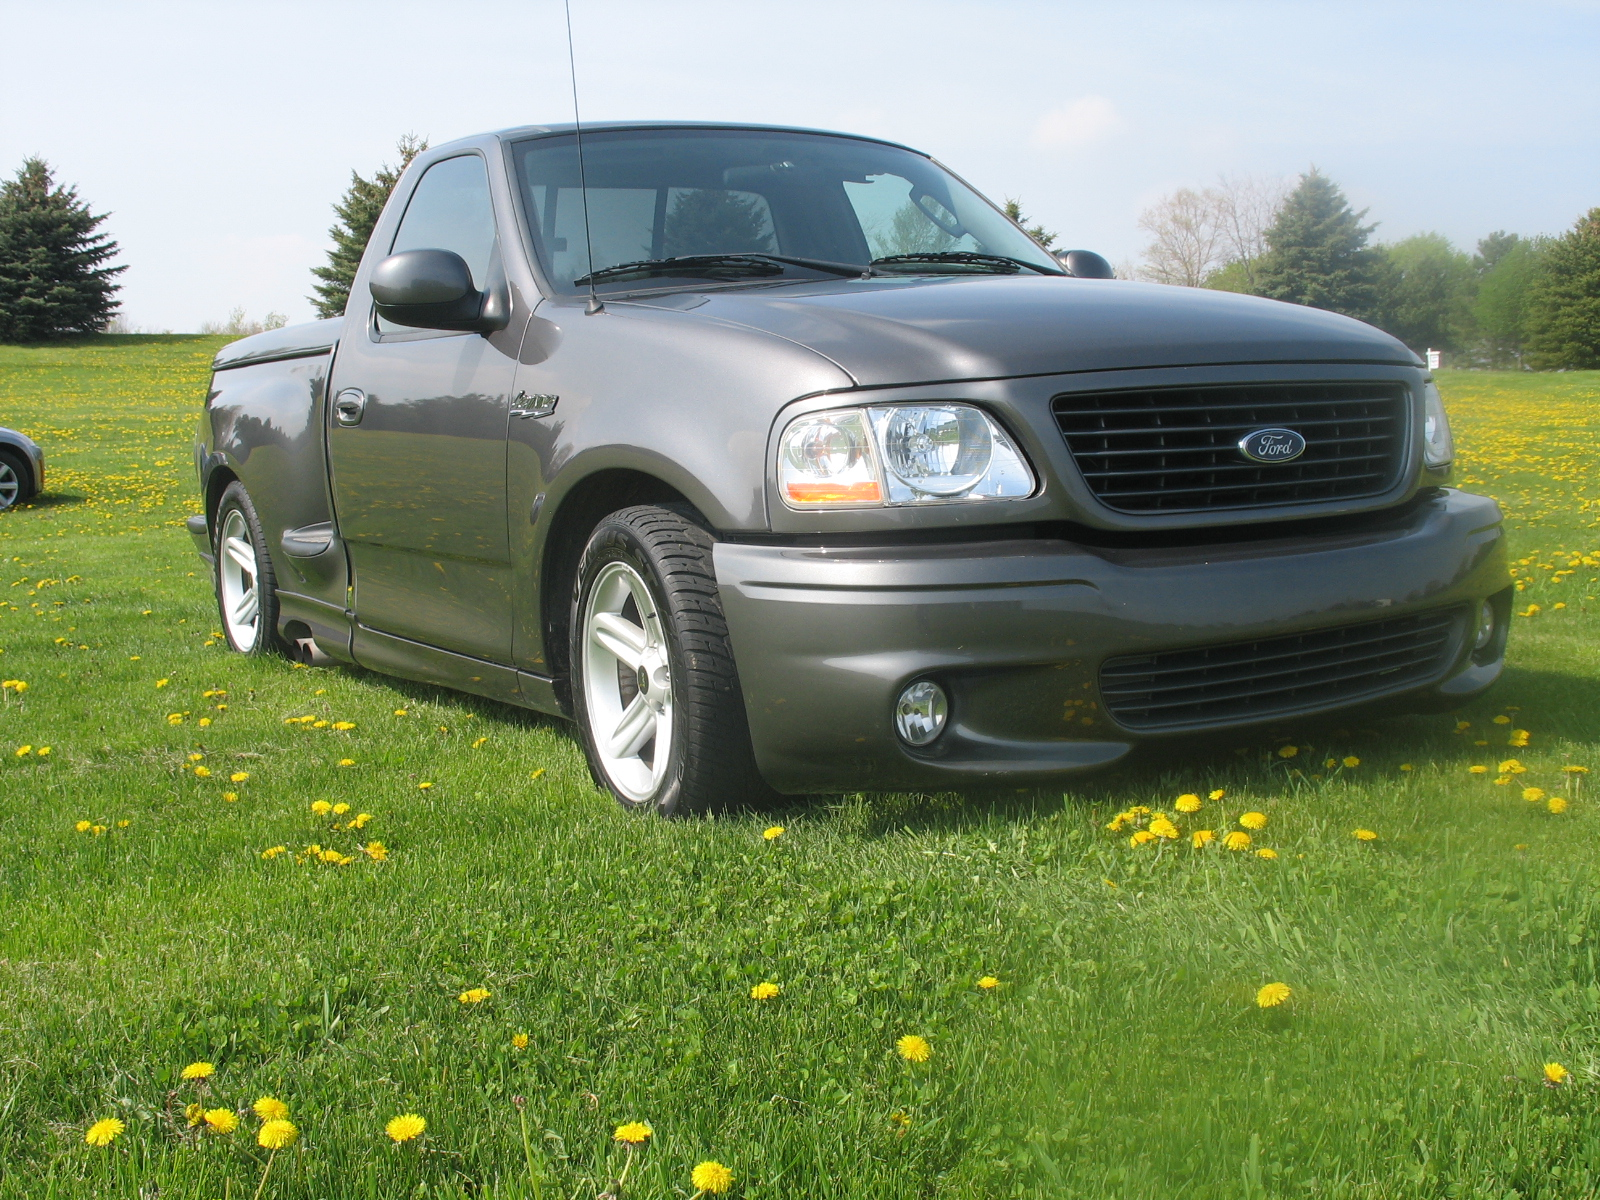 2003 Ford F-150 SVT Lightning 2 Dr Supercharged Standard Cab Stepside SB picture